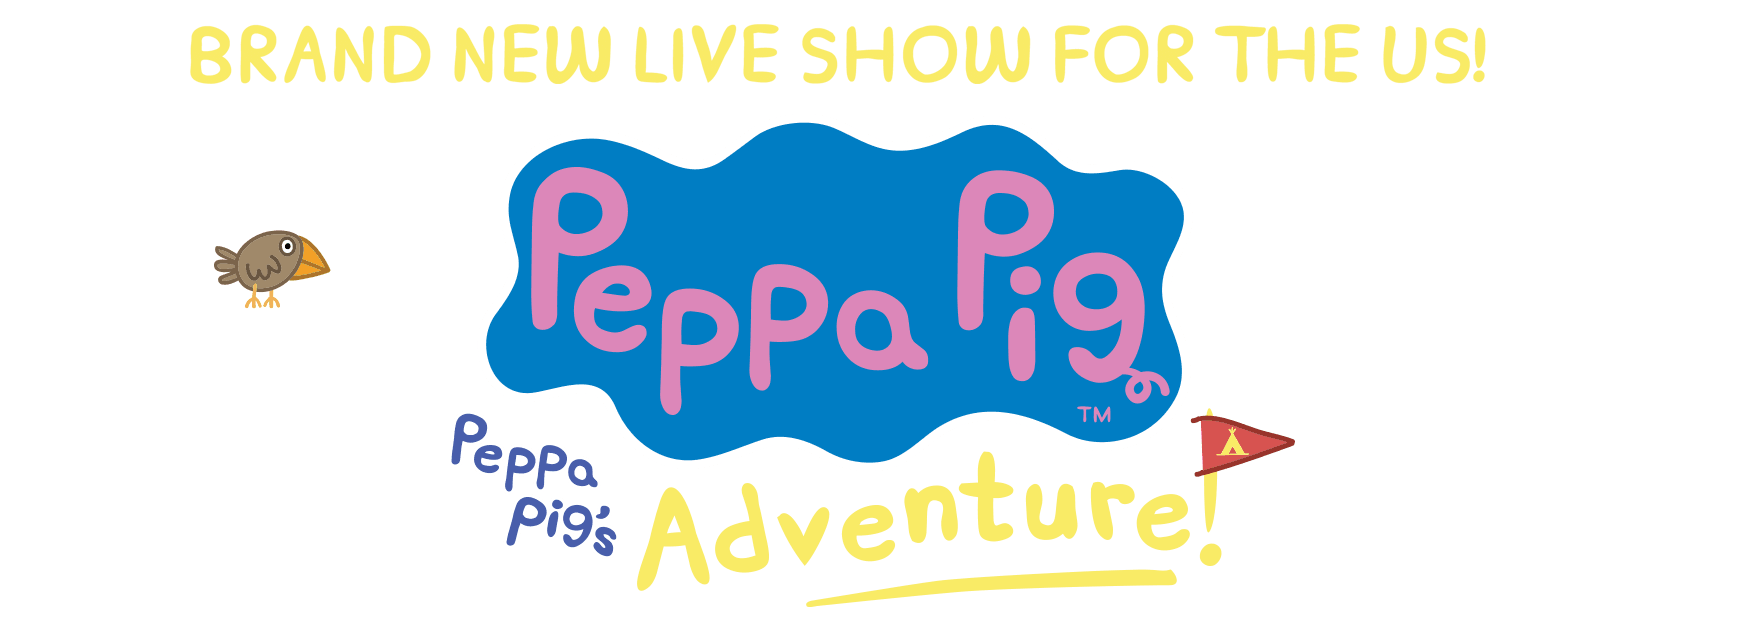 Brand new live show for the US! Peppa Pig's Adventure